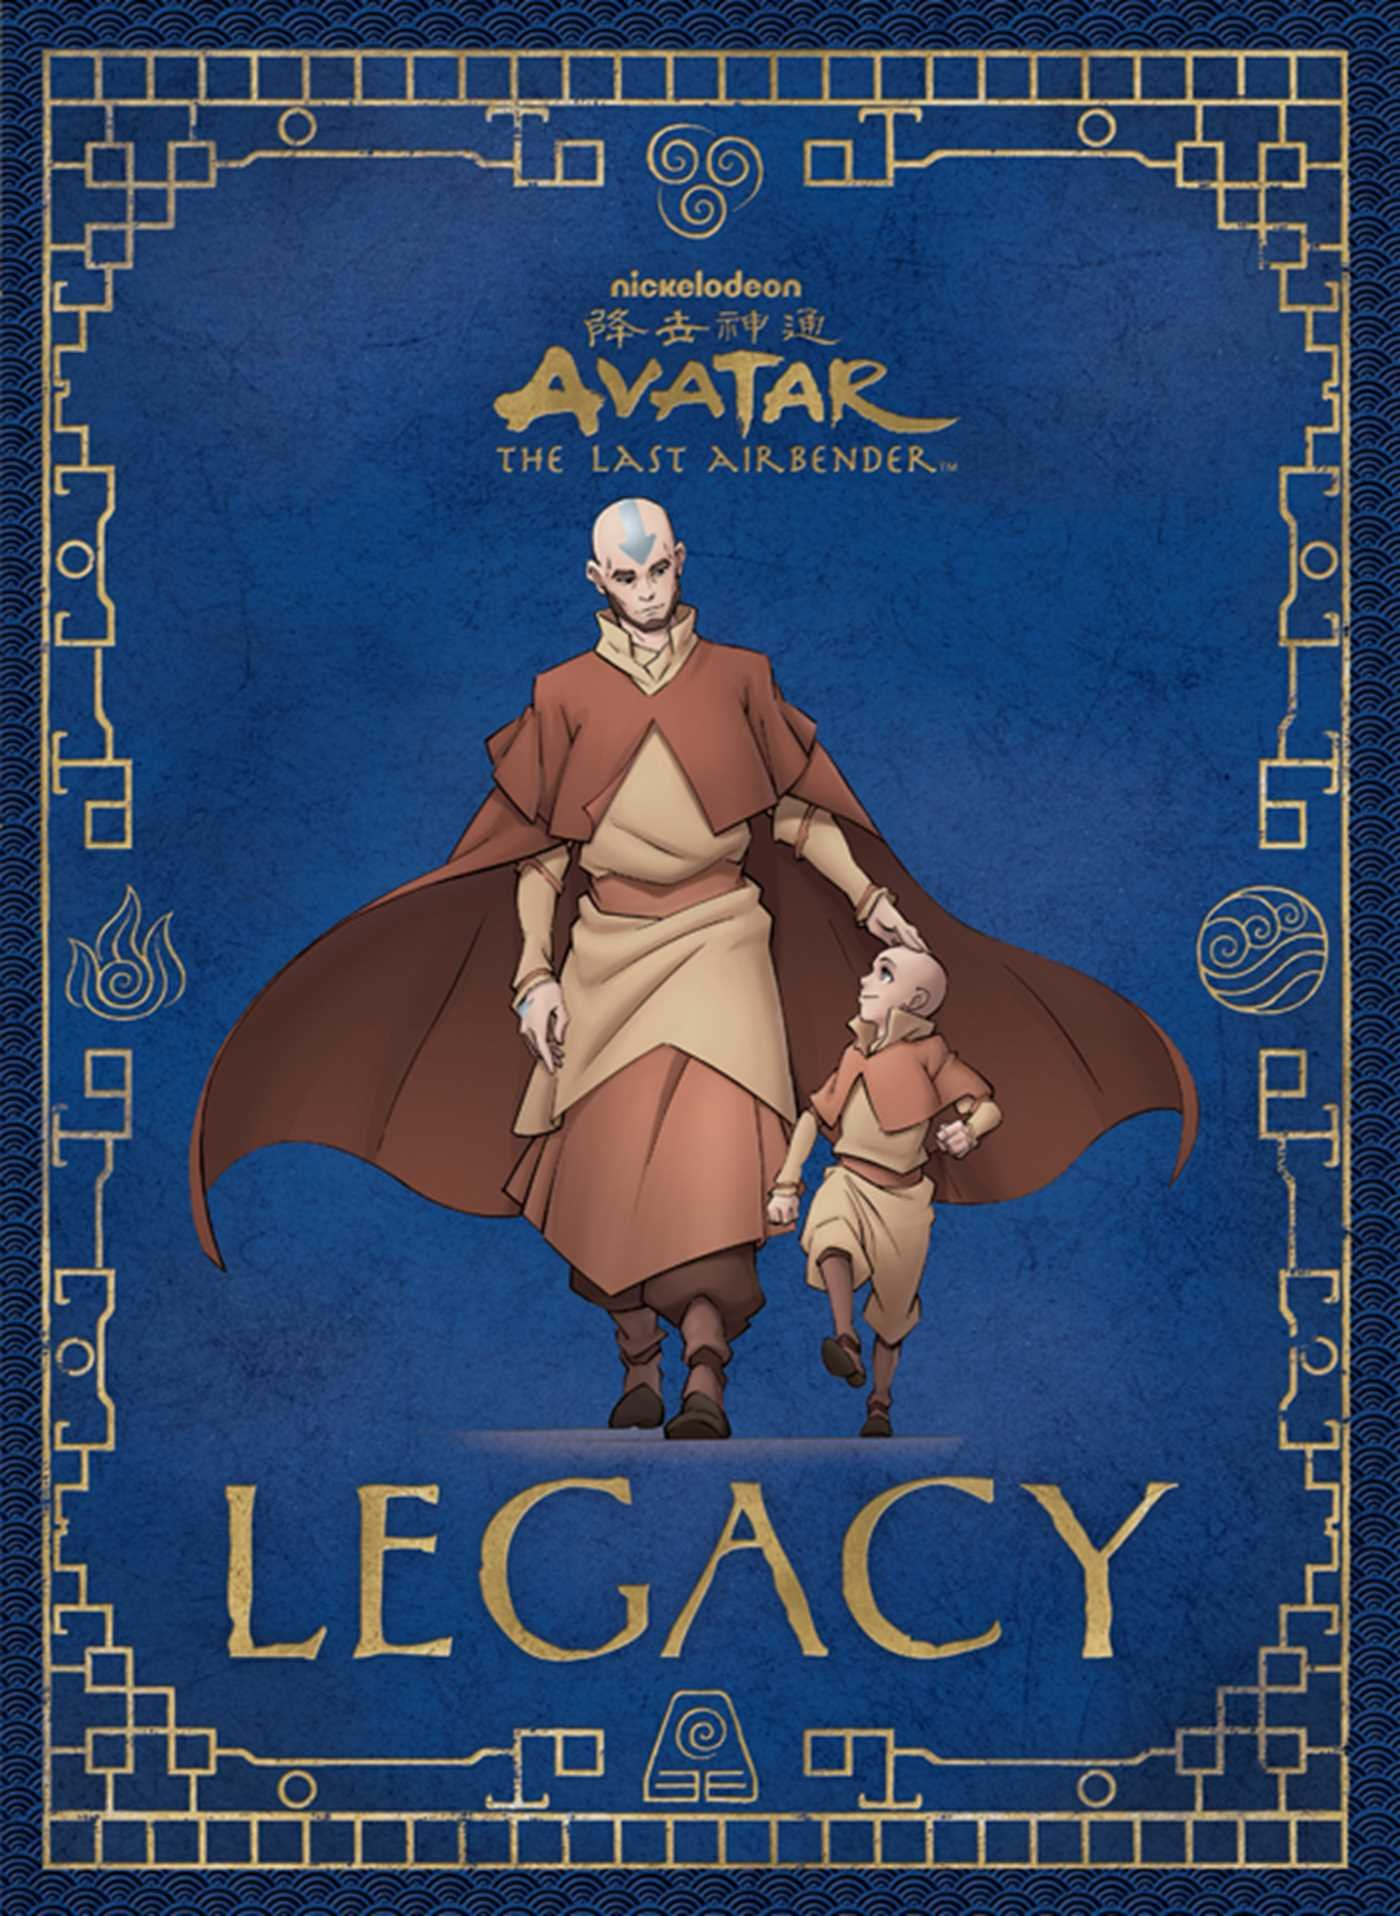 Avatar: The Last Airbender: Legacy (Insight Legends) PDF